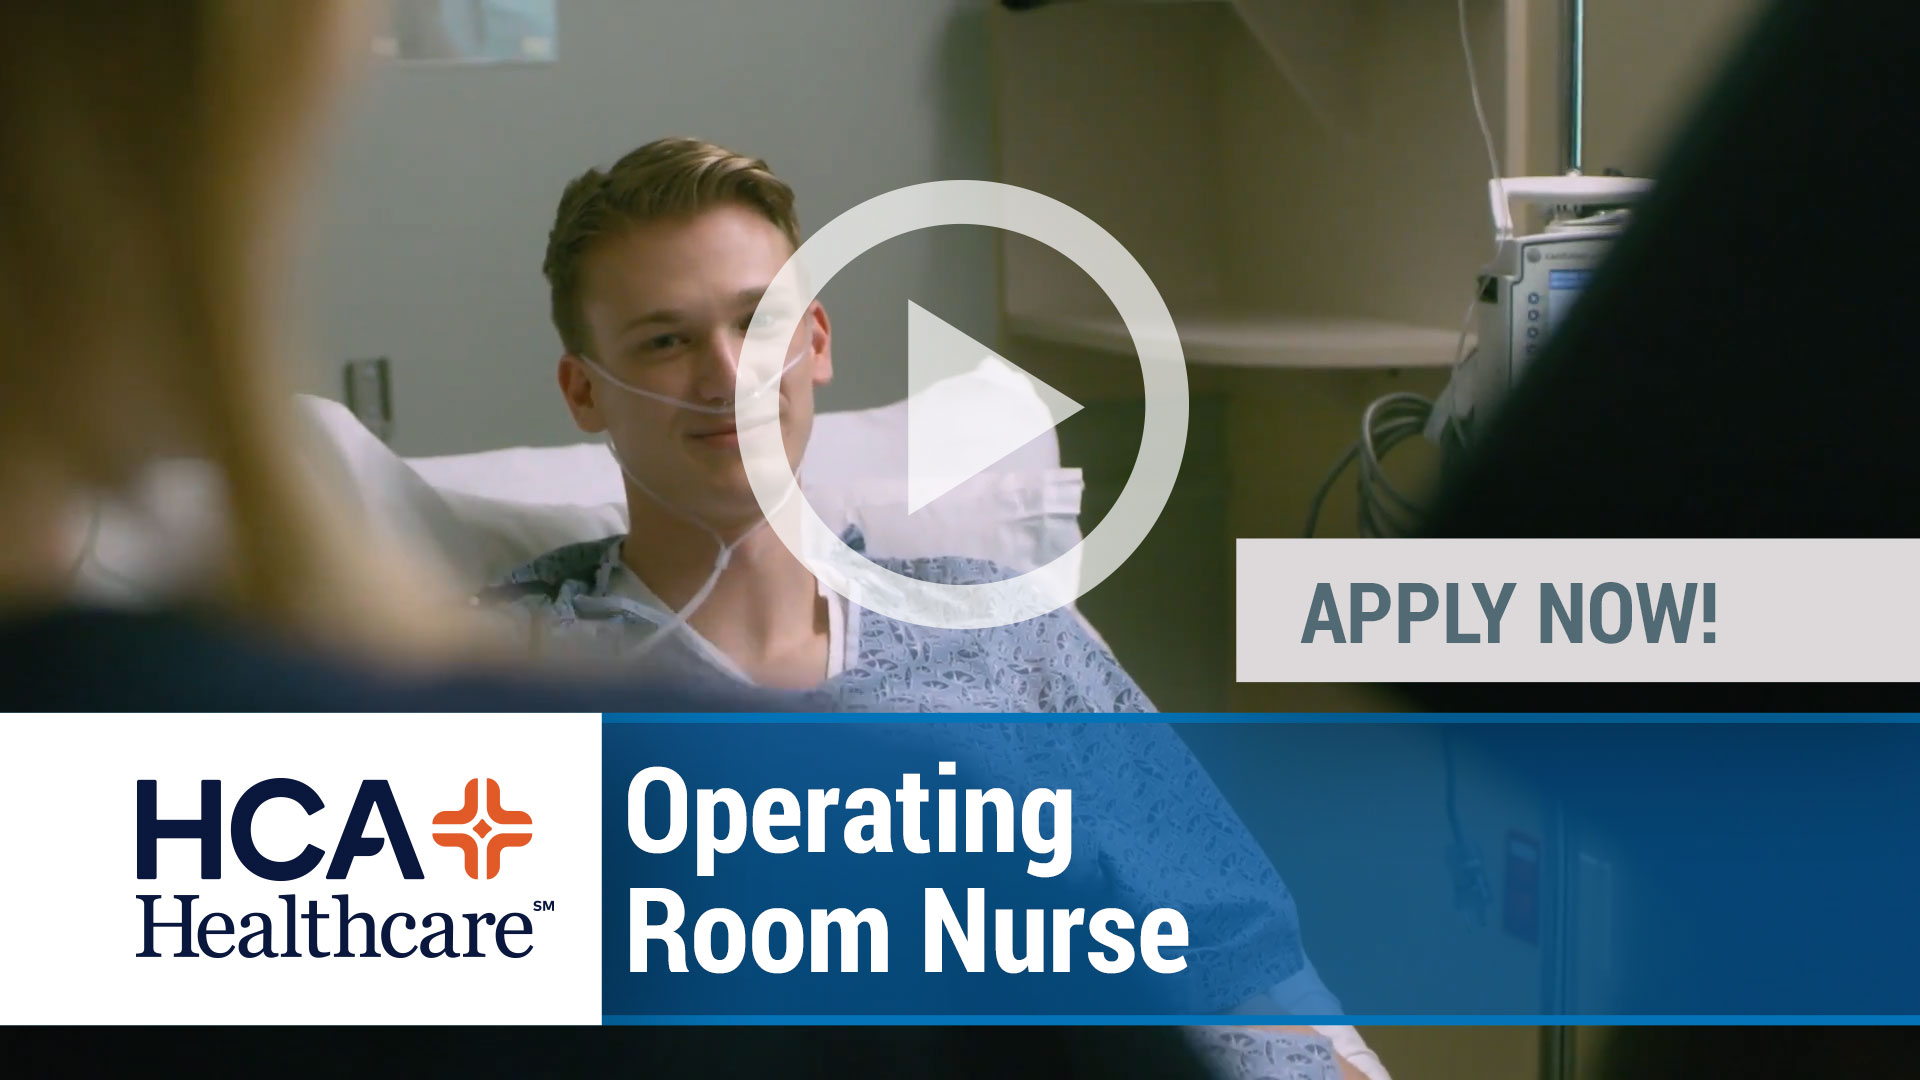 Watch our careers video for available job opening Operating Room Nurse in Pearland, Texas